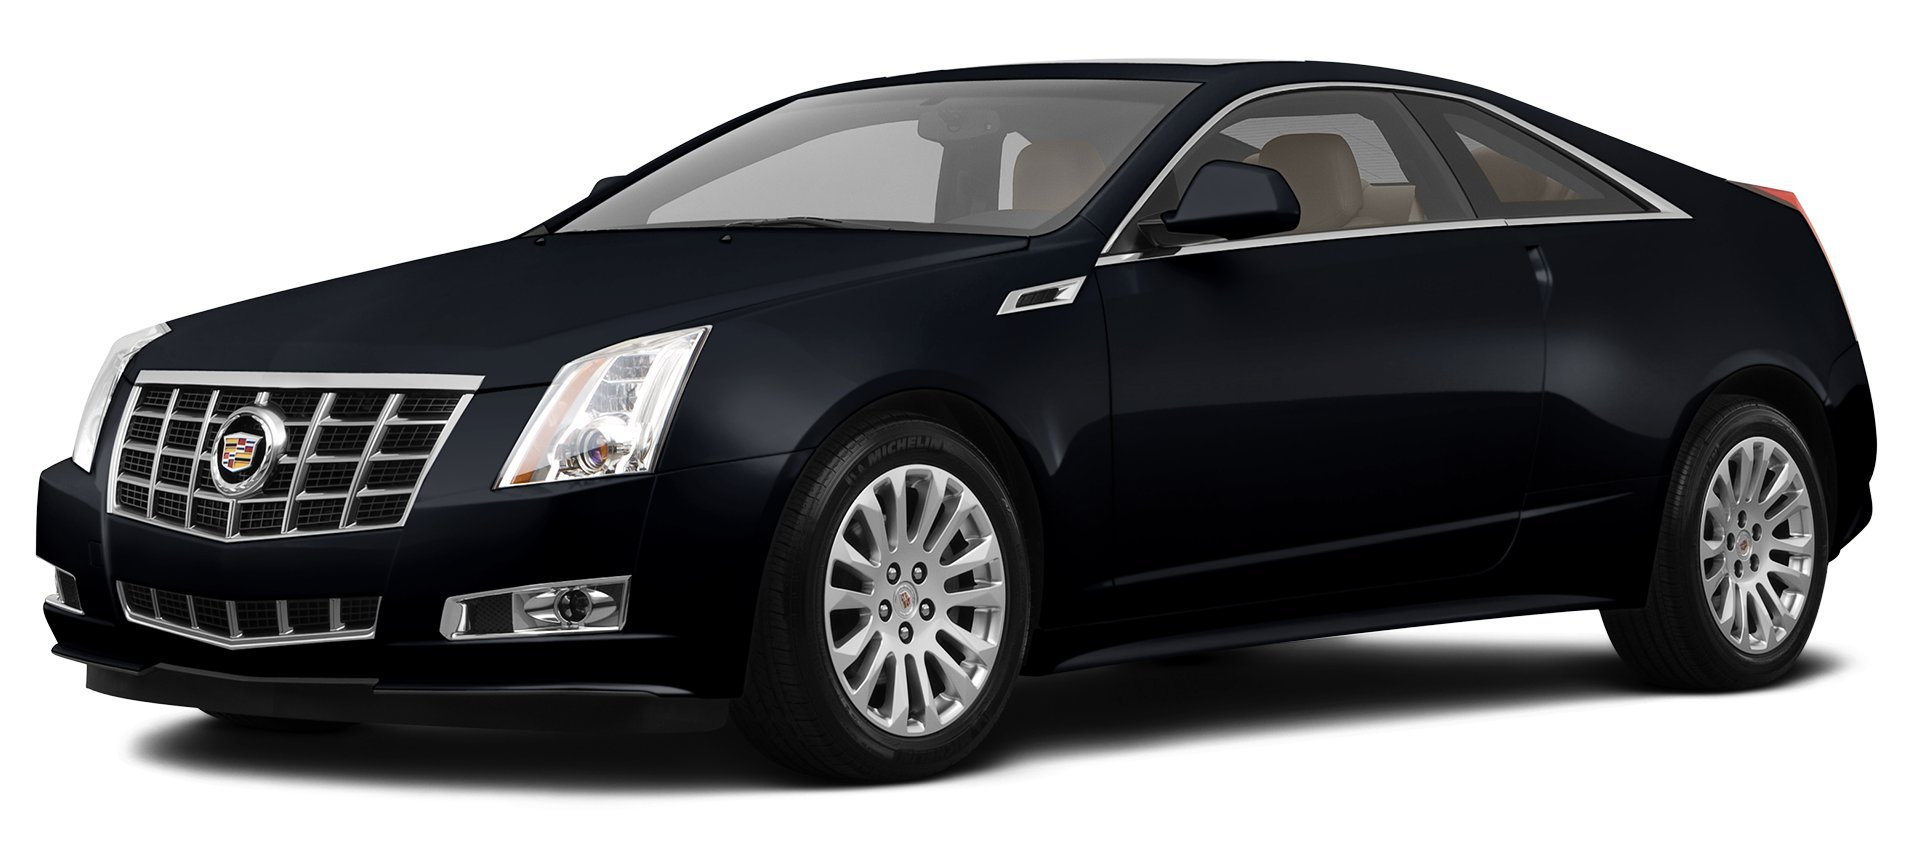 Amazon Com 2013 Cadillac Cts Reviews Images And Specs Vehicles